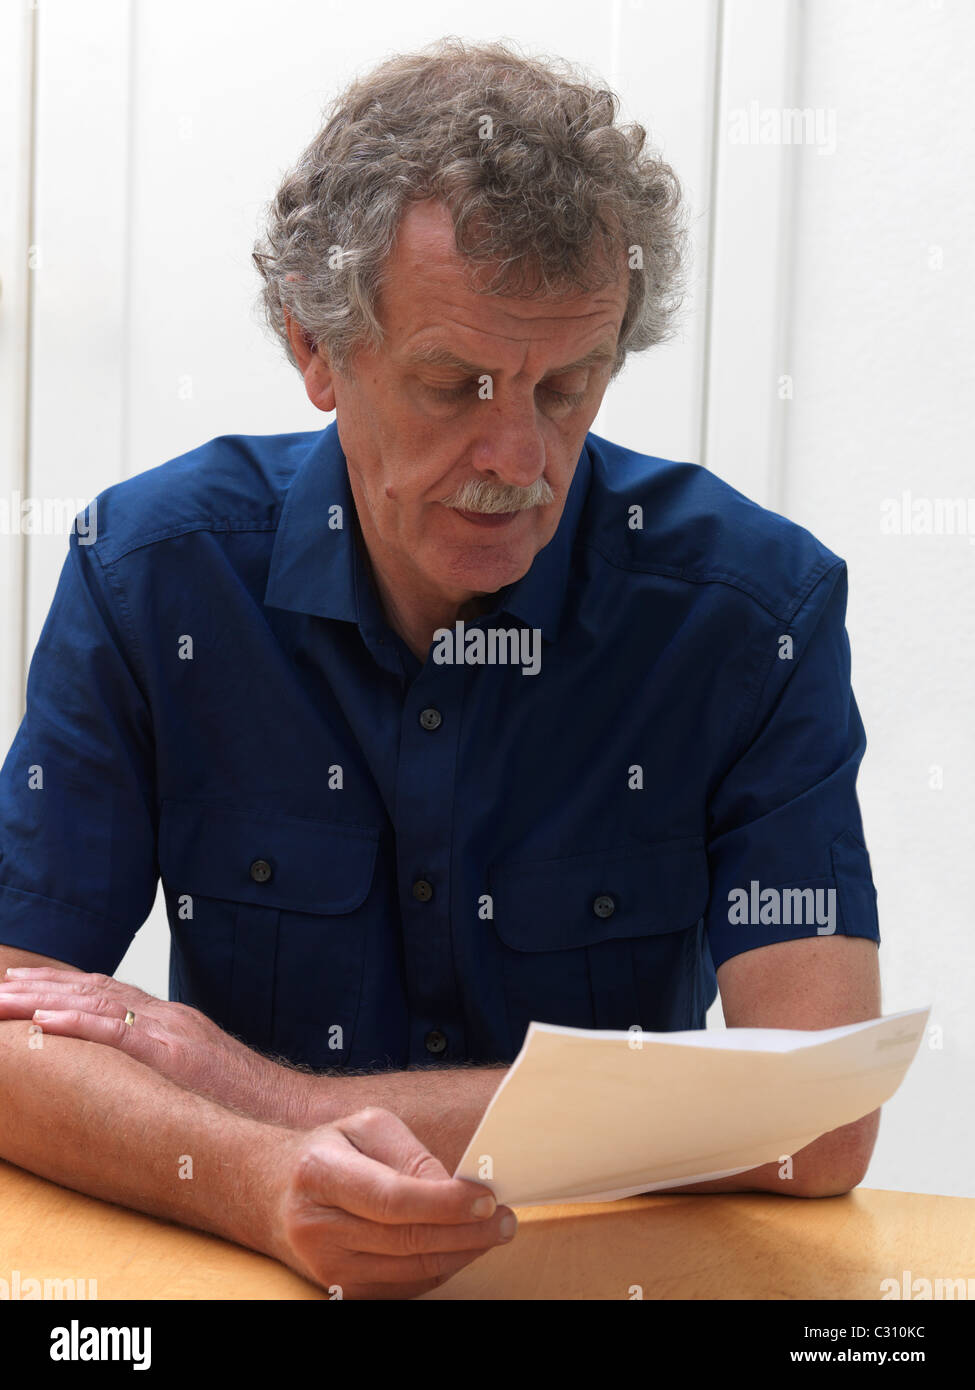 Man Reading A Formal Letter - Stock Image